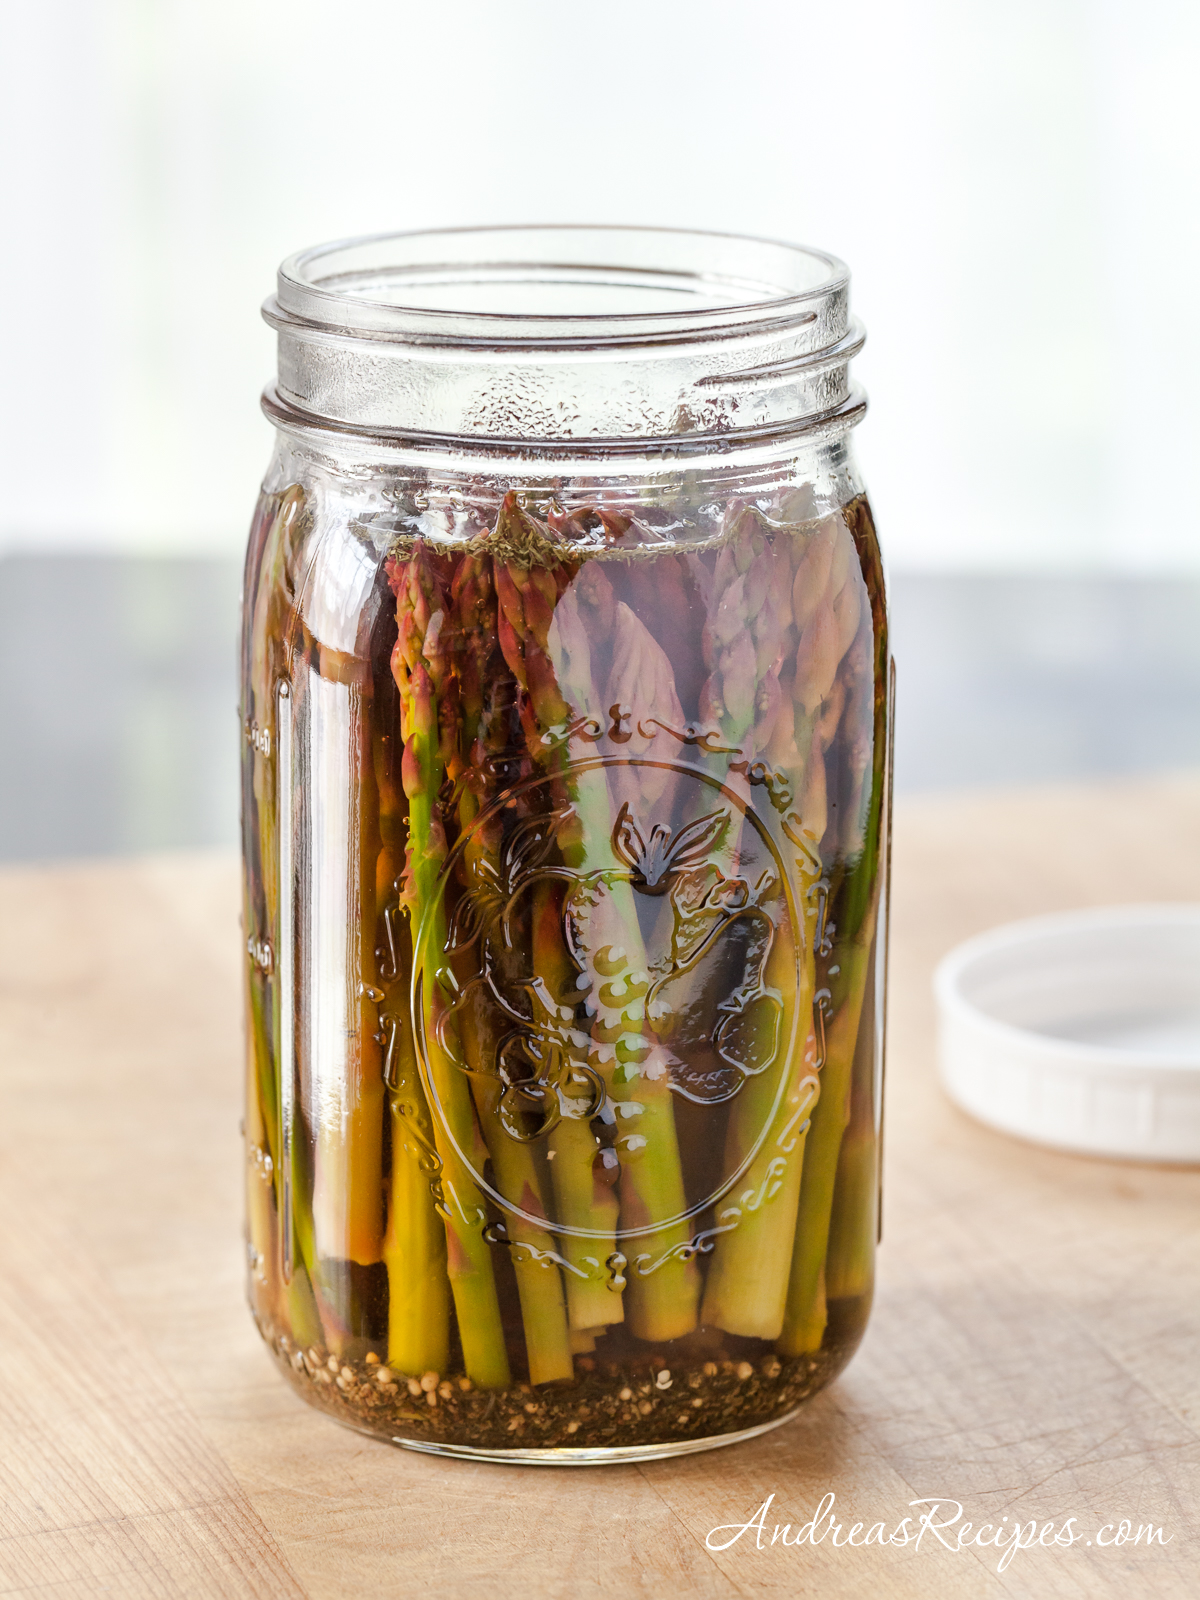 Refrigerator Asparagus Pickles - Andrea Meyers